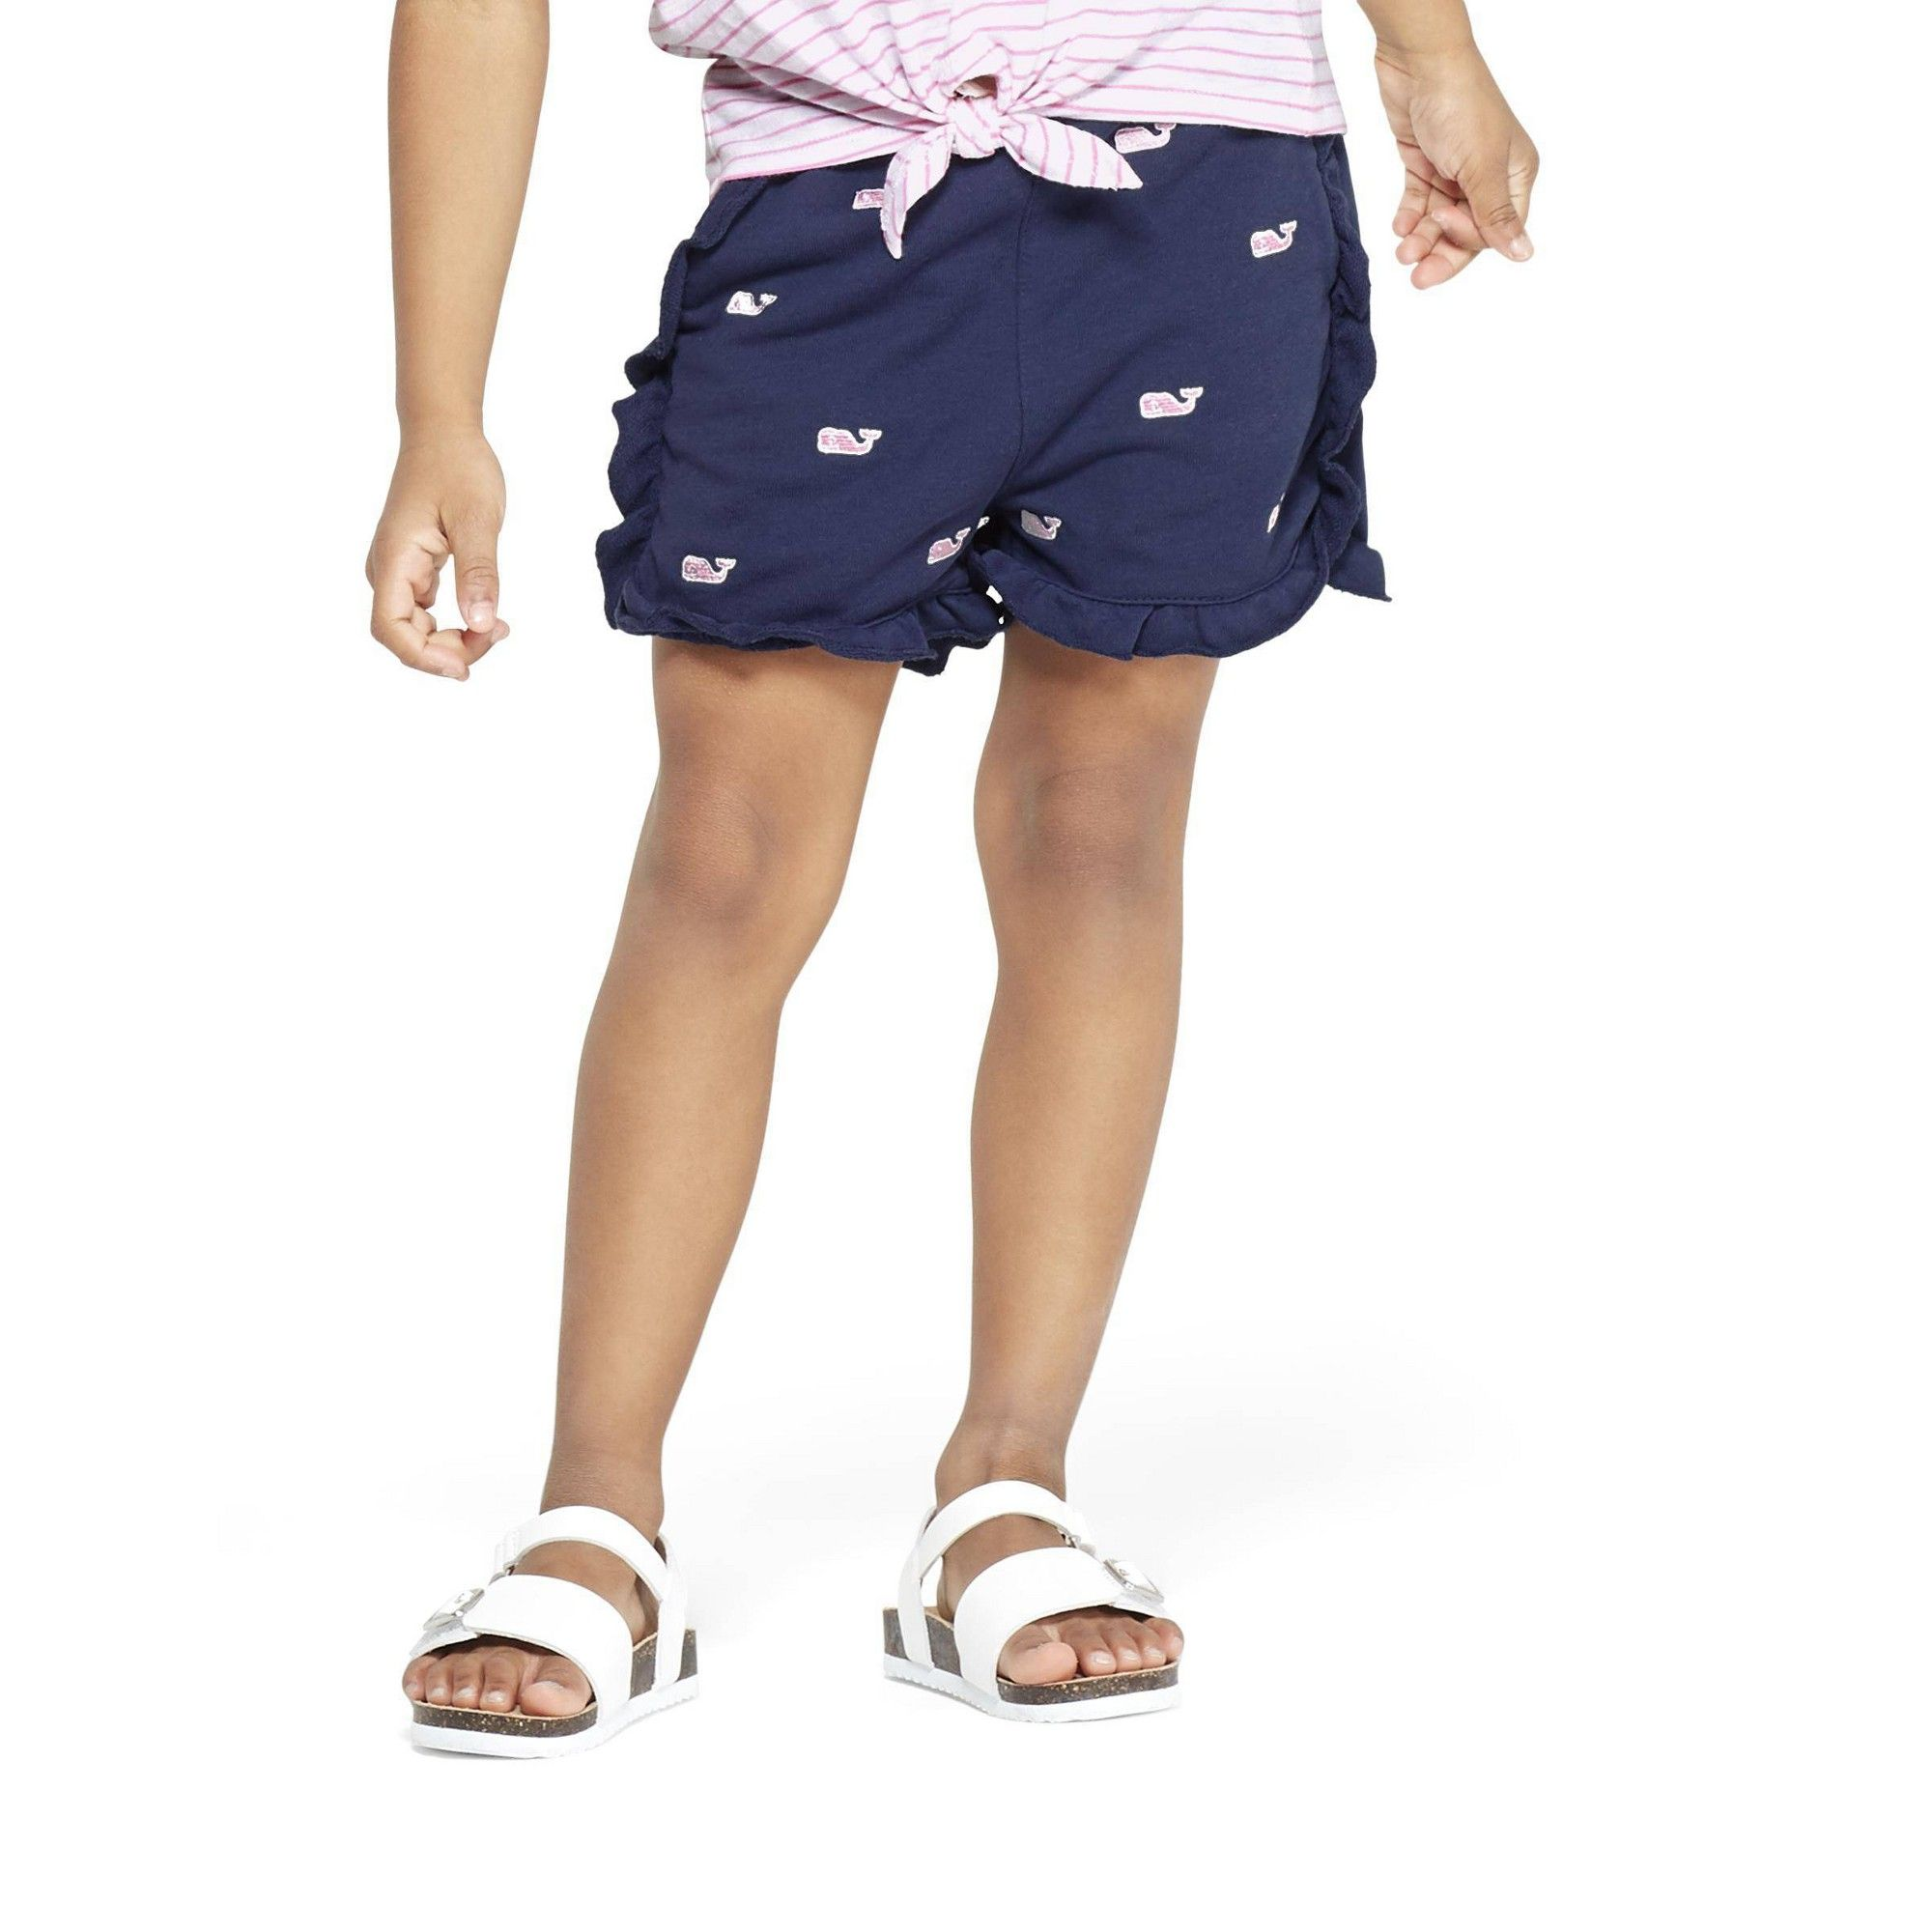 Vineyard Vines For Target Toddler Girls Embroidered Whale Navy Shorts